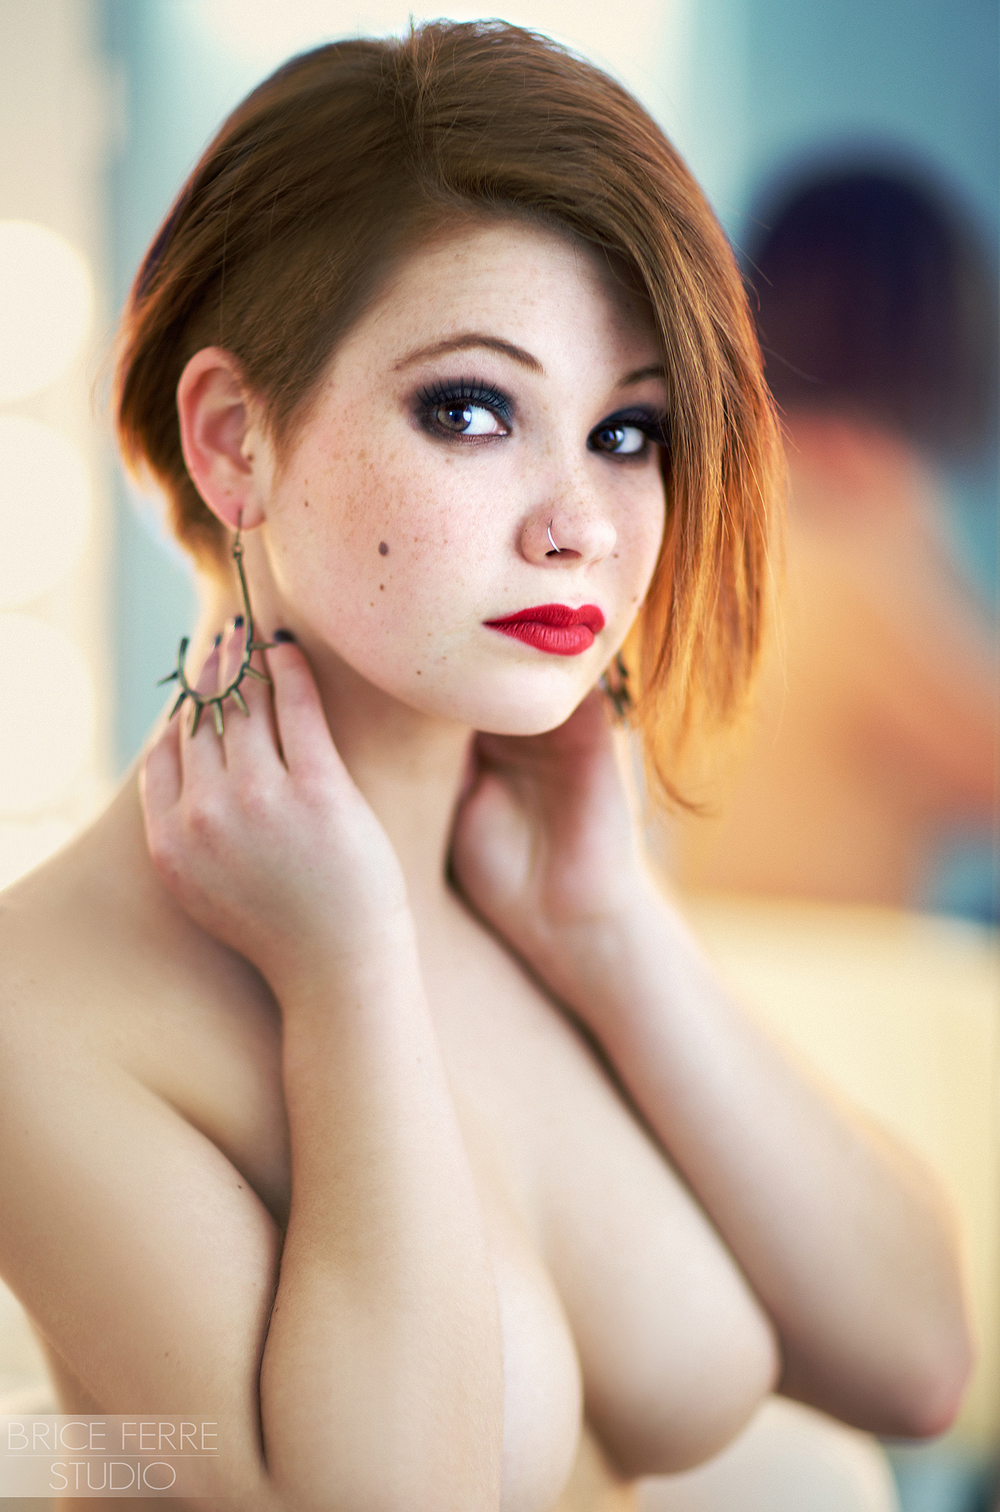 III_4451 - Bailey Miss Morgane - by Brice Ferre Studio - Vancouver Portrait Photographer.jpg